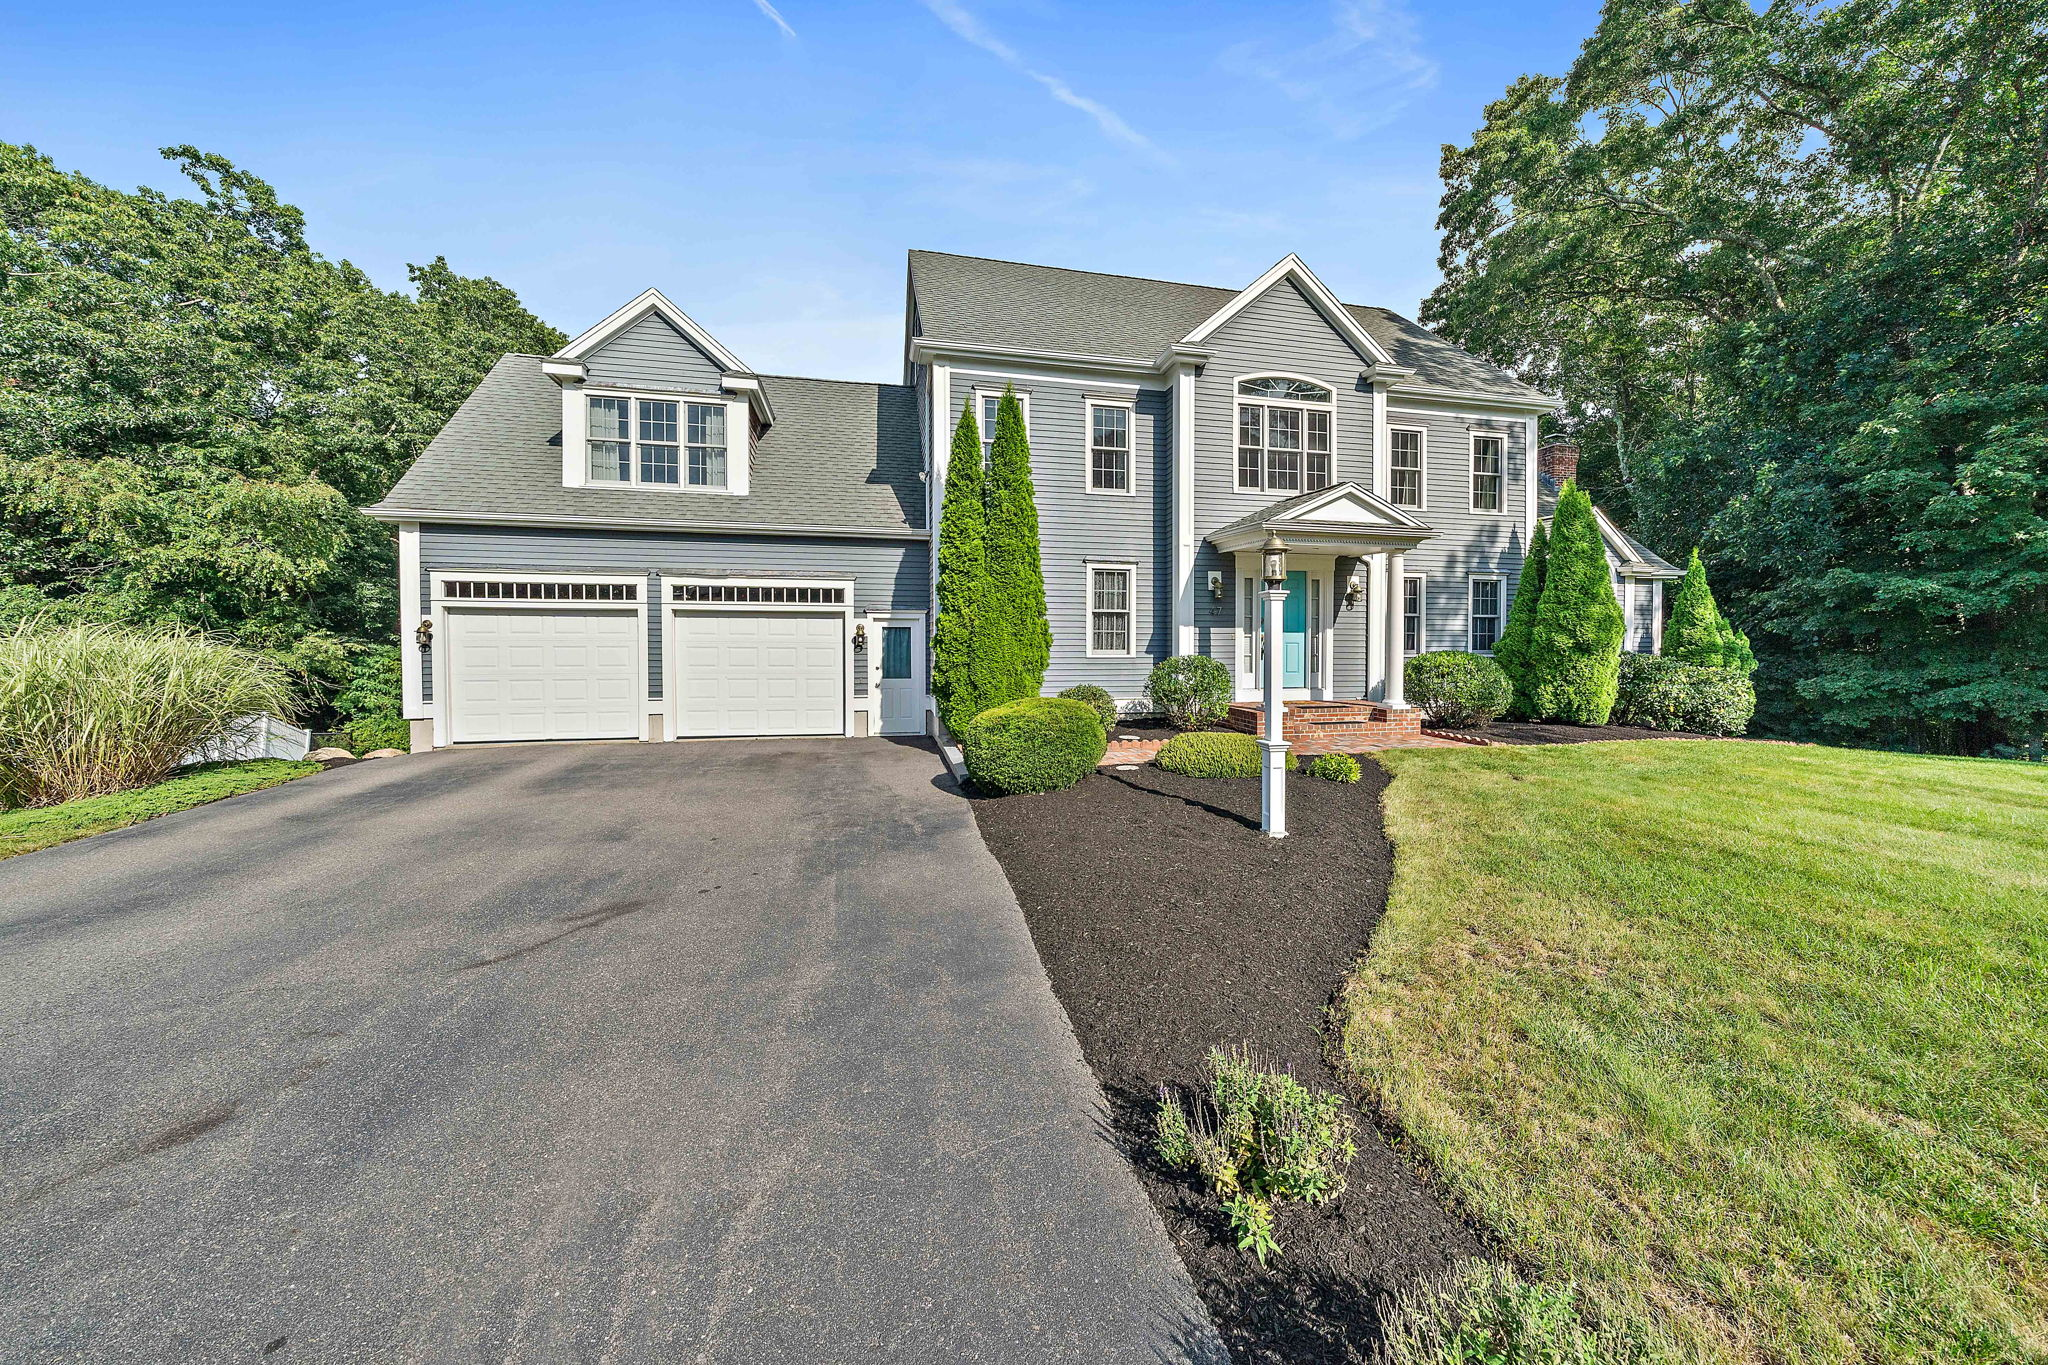 47 Townsend Woods Dr, Hanover, MA 02339, USA Photo 2